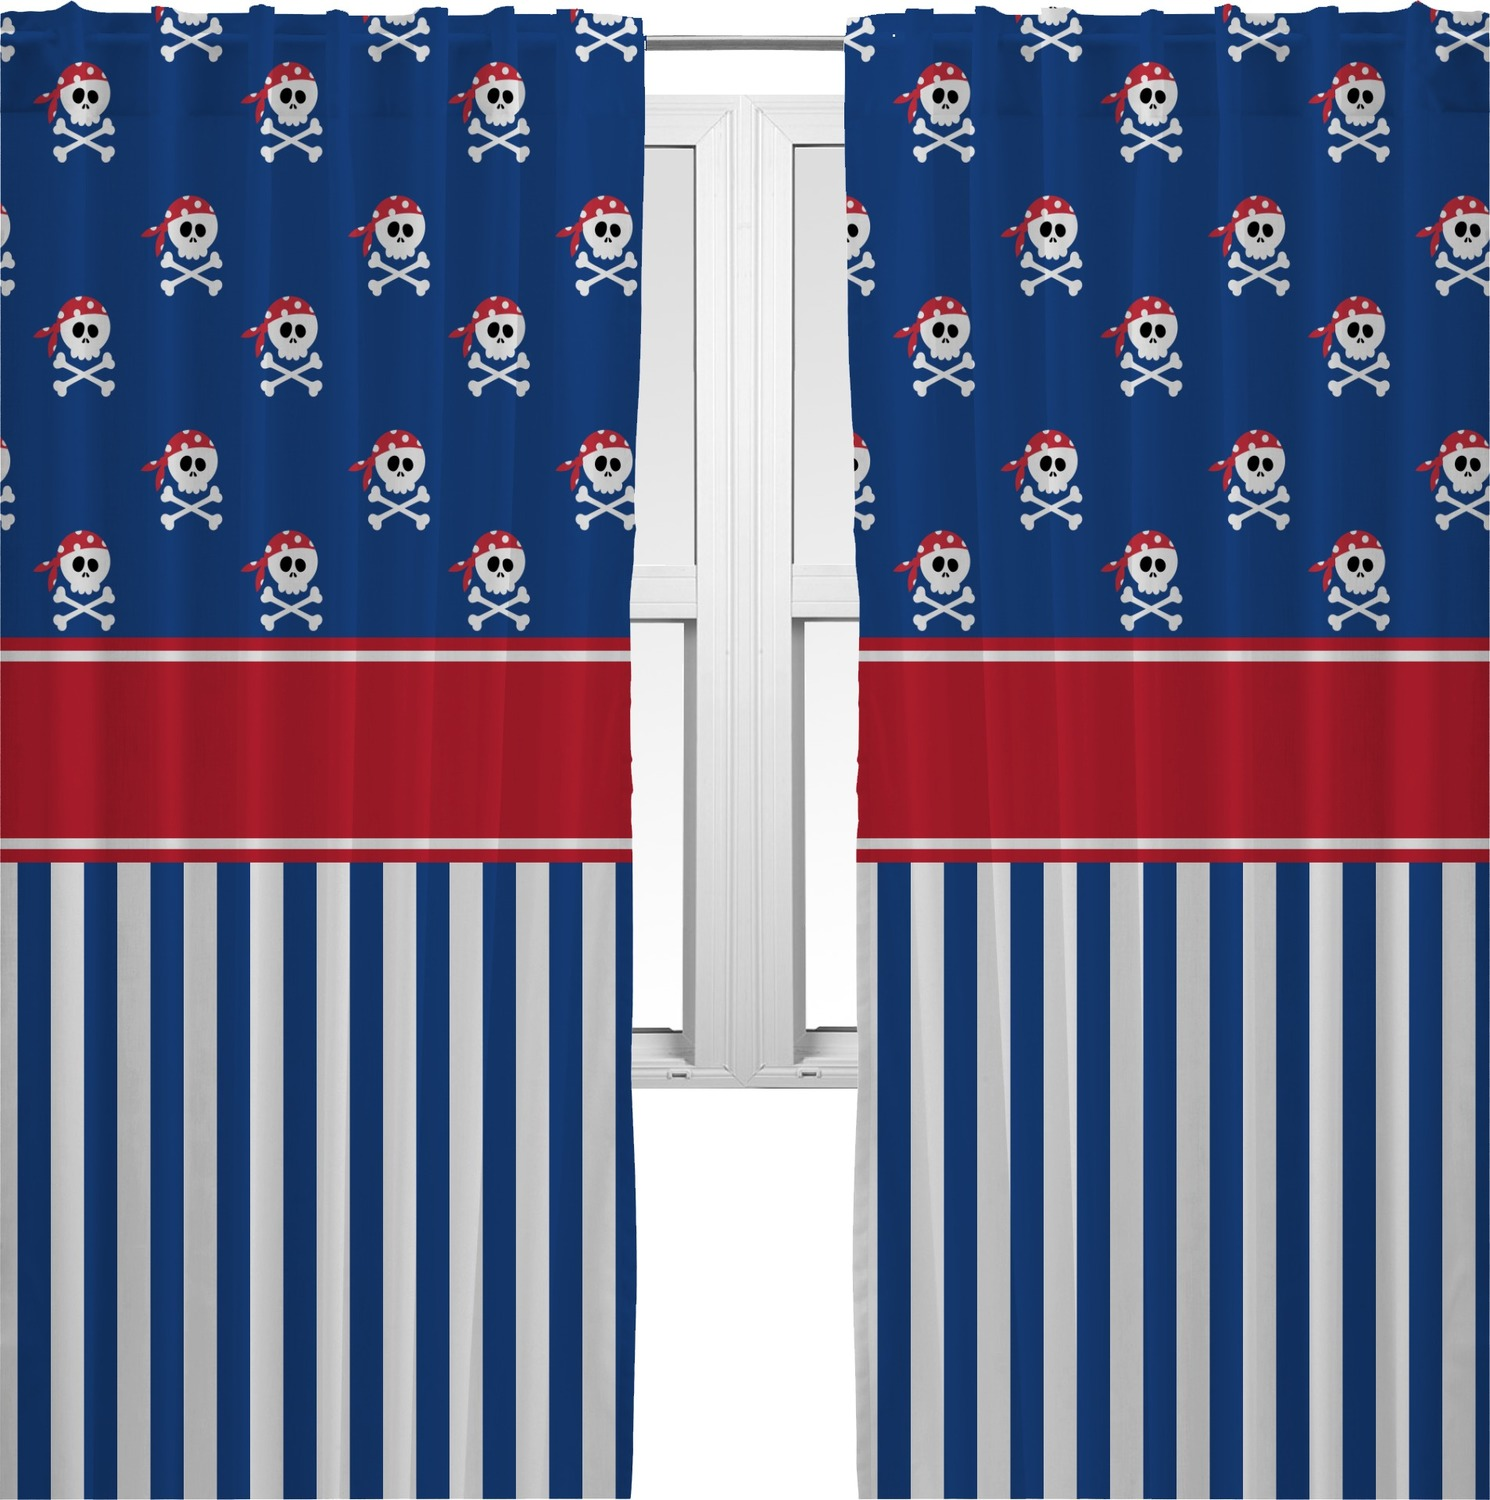 Perfect Blue Pirate Curtains (2 Panels Per Set) (Personalized)